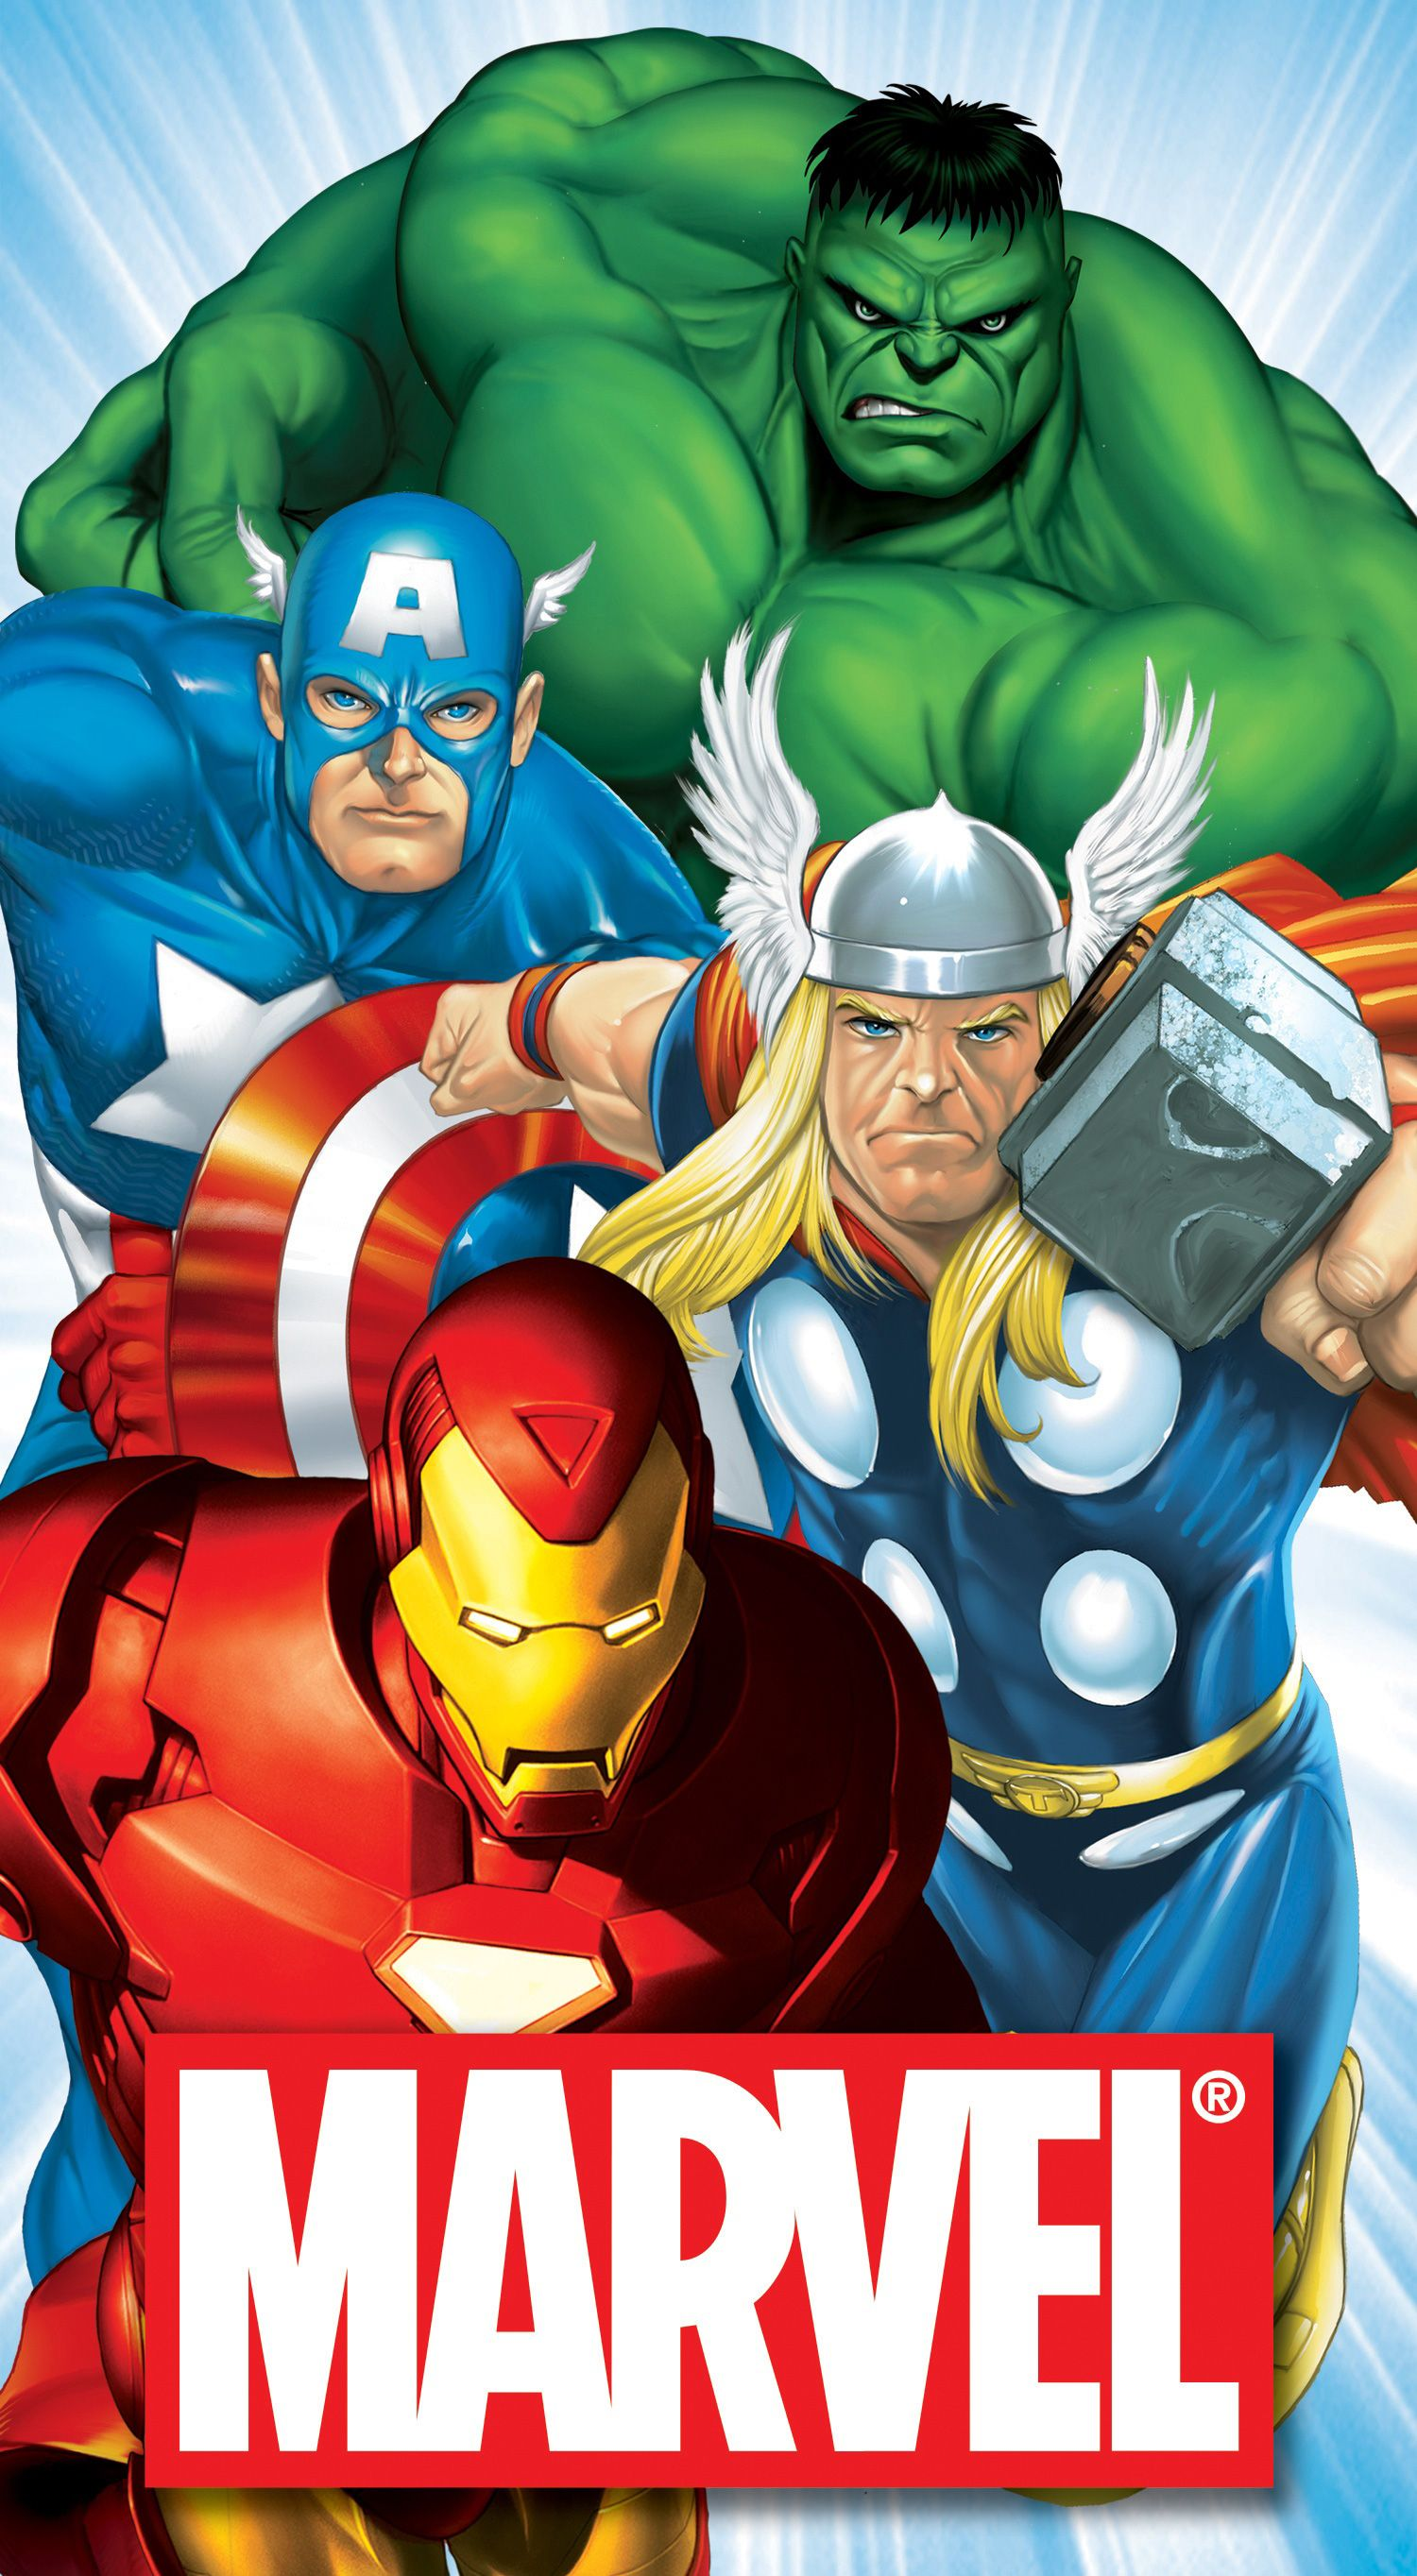 marvel_poster_captain_america__thor__iron_man_and_hulk_l.jpg